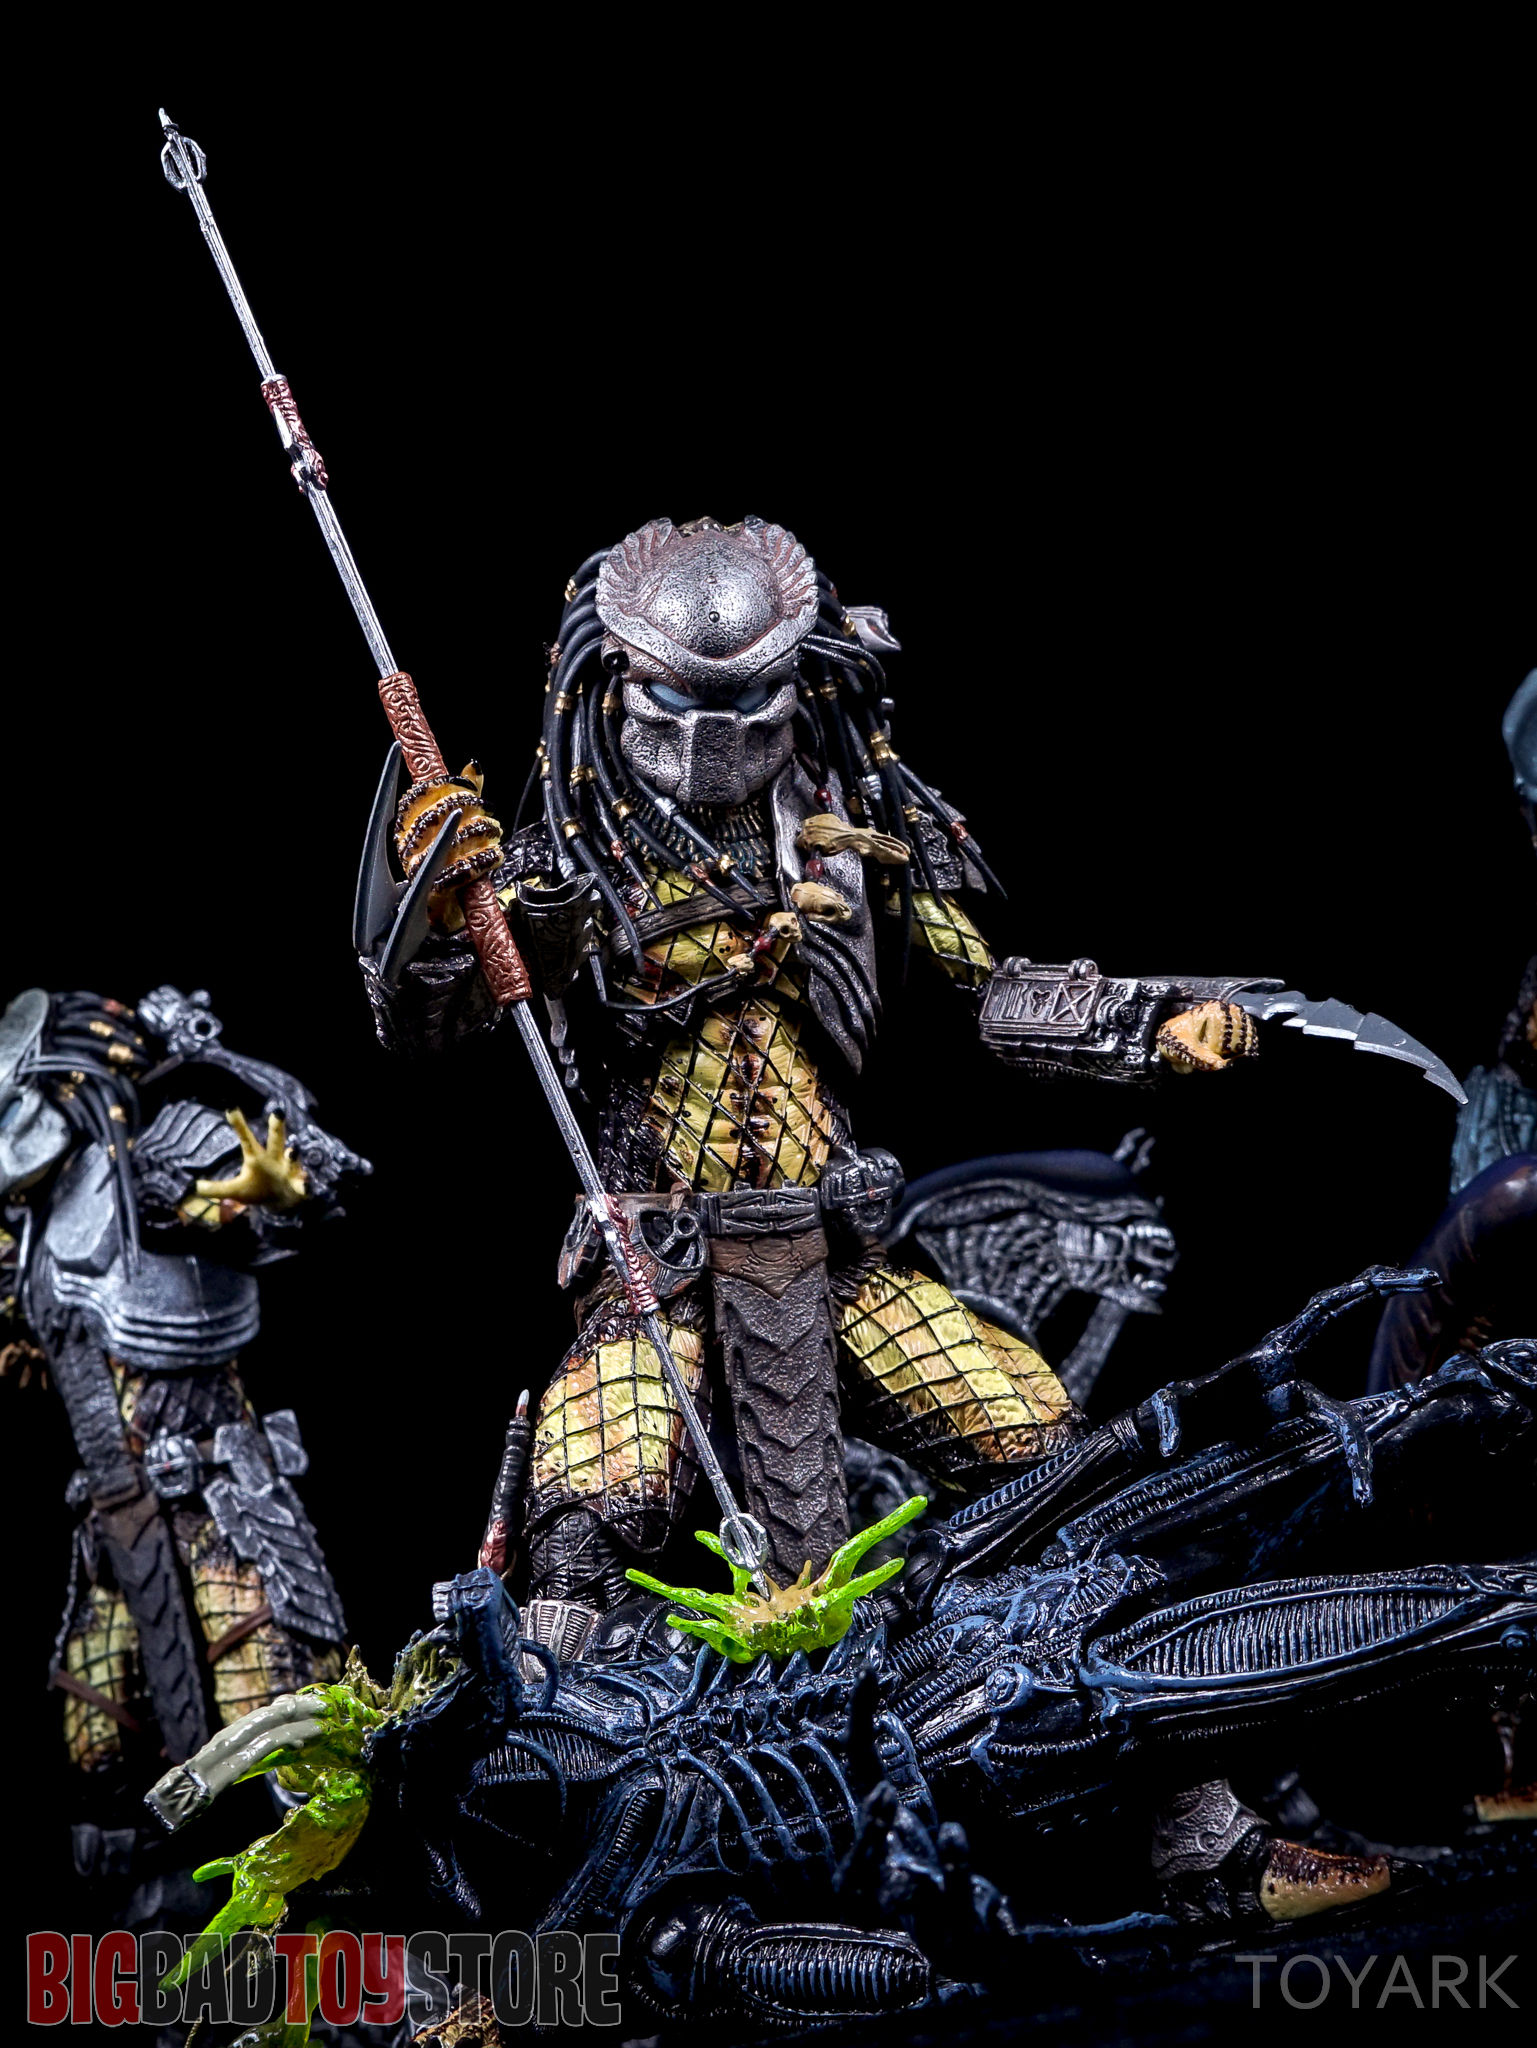 http://news.toyark.com/wp-content/uploads/sites/4/2016/05/NECA-Predator-Series-15-AvP-086.jpg